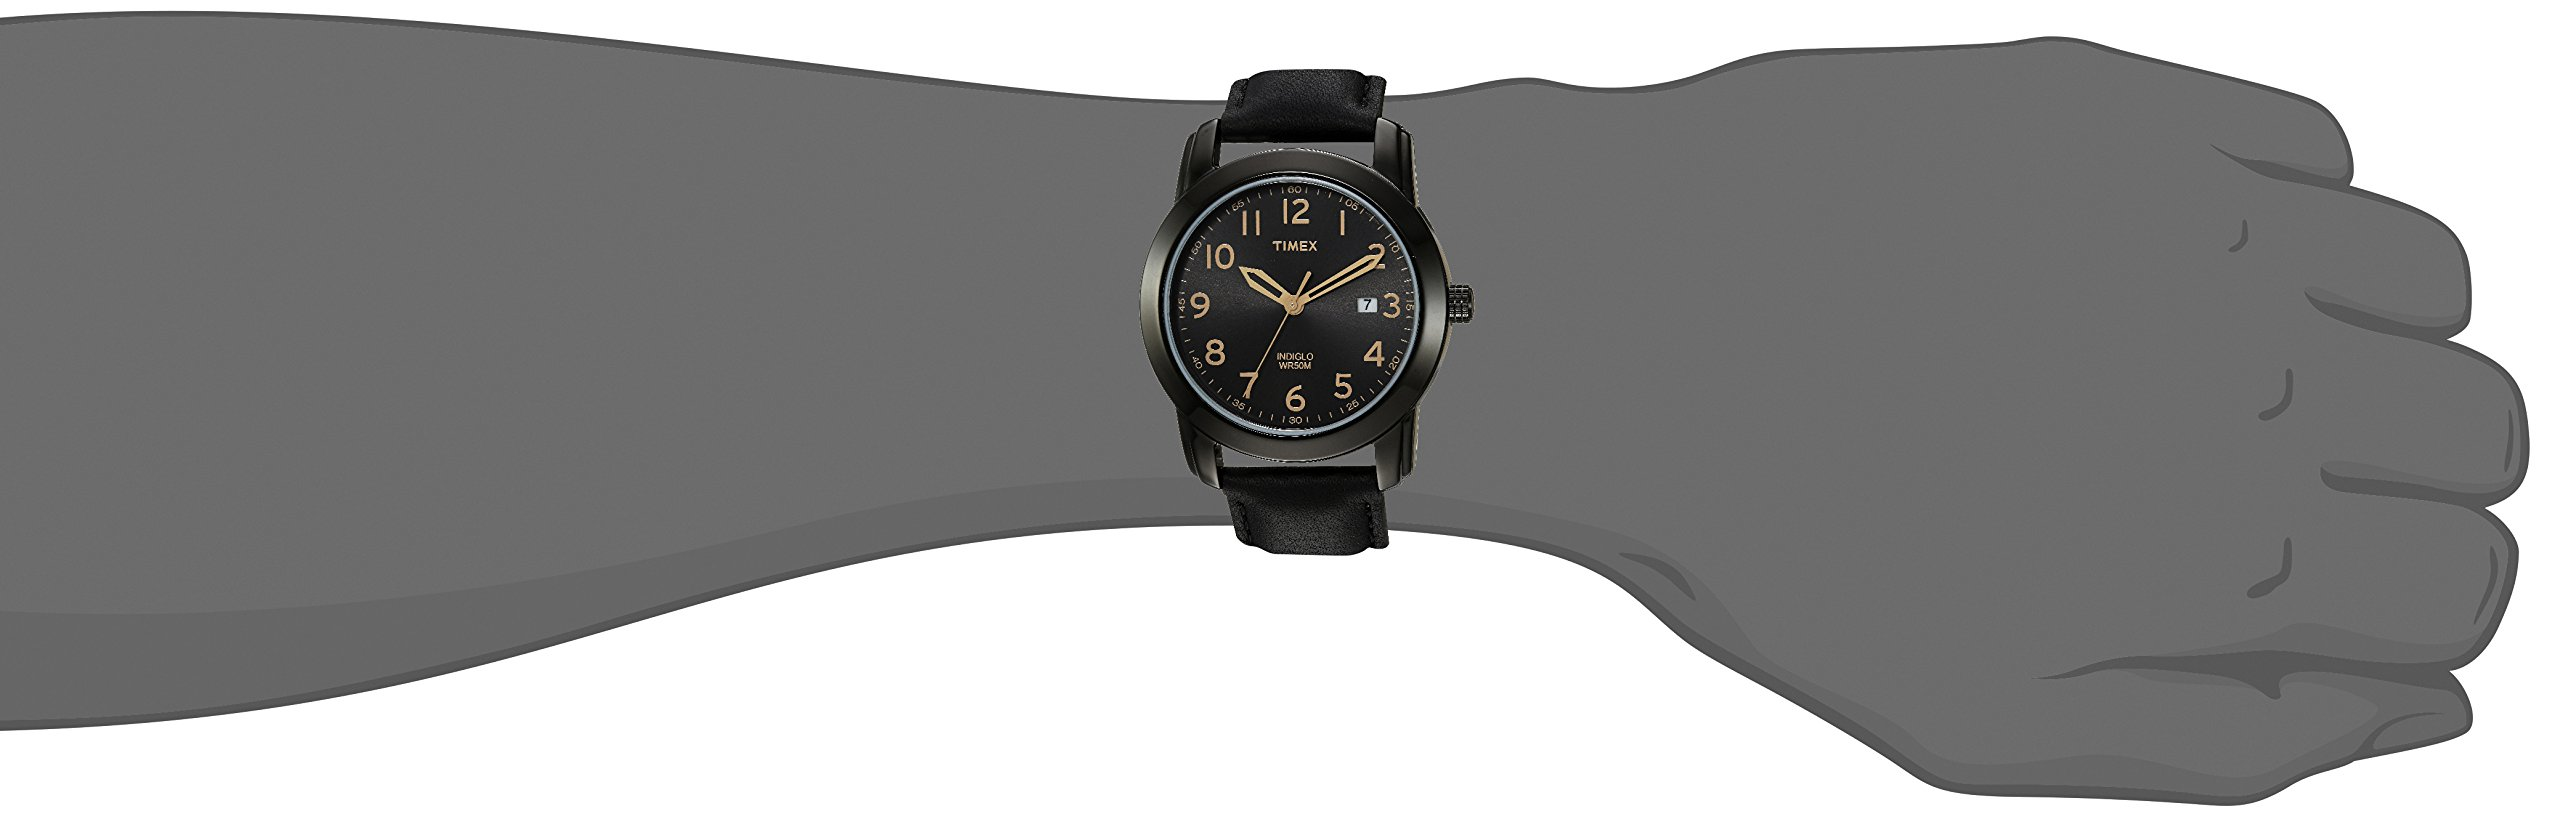 Timex Men's TW2R29800 Highland Street Black Leather Strap Watch by Timex (Image #4)